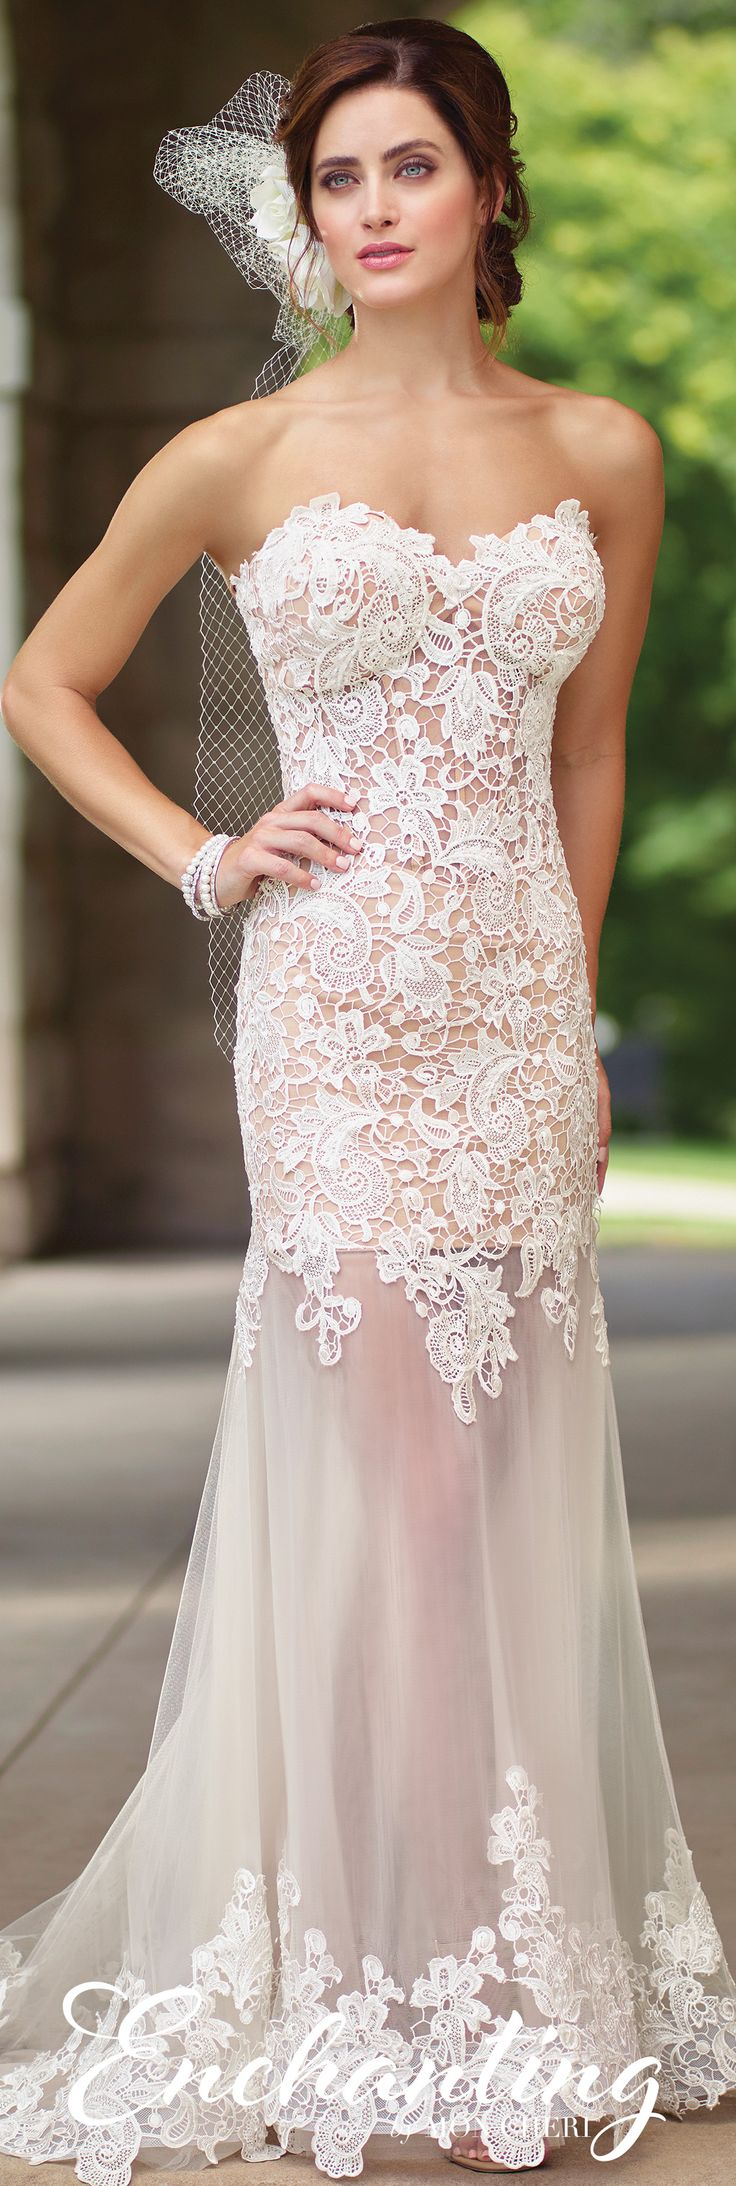 106 best images about unique wedding dresses on pinterest for Best lace wedding dresses